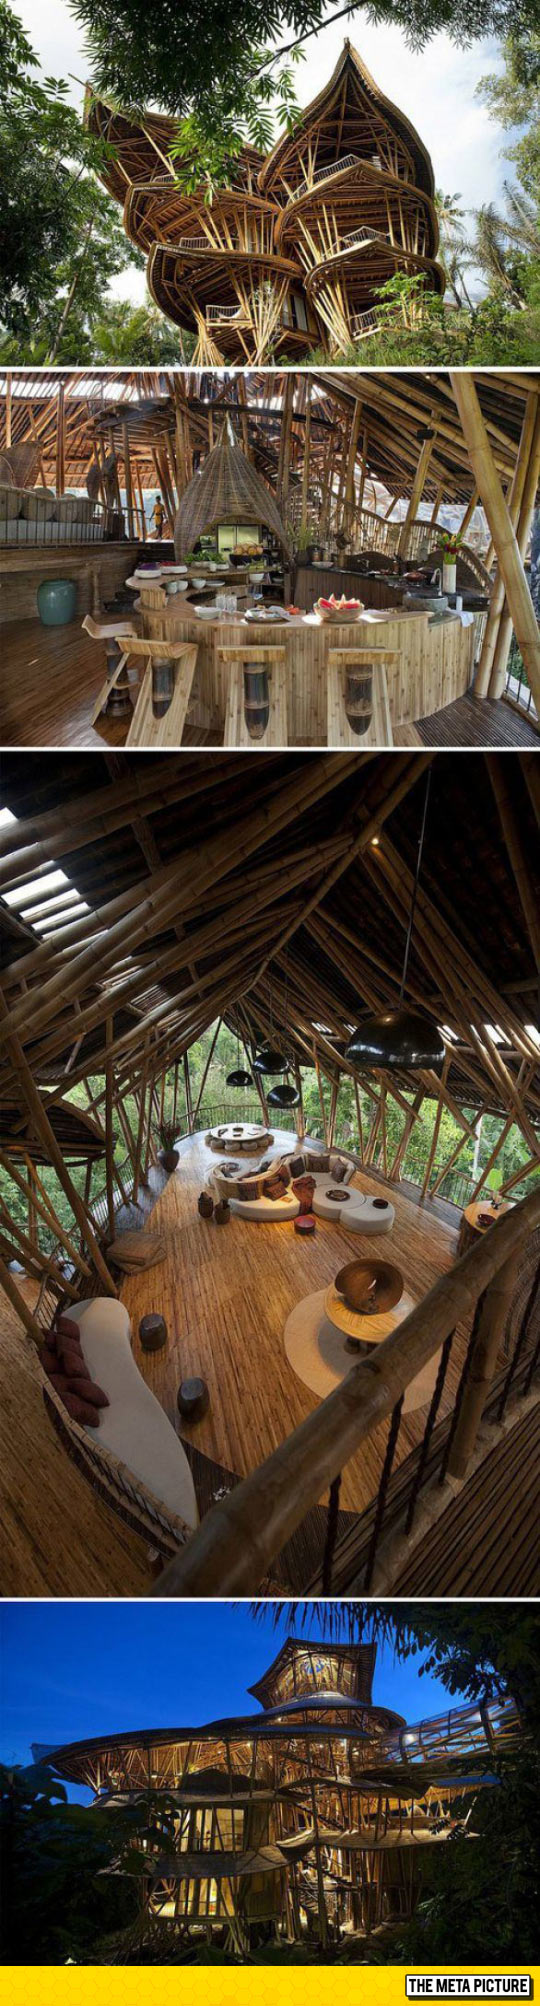 I Would Definitively Live Here